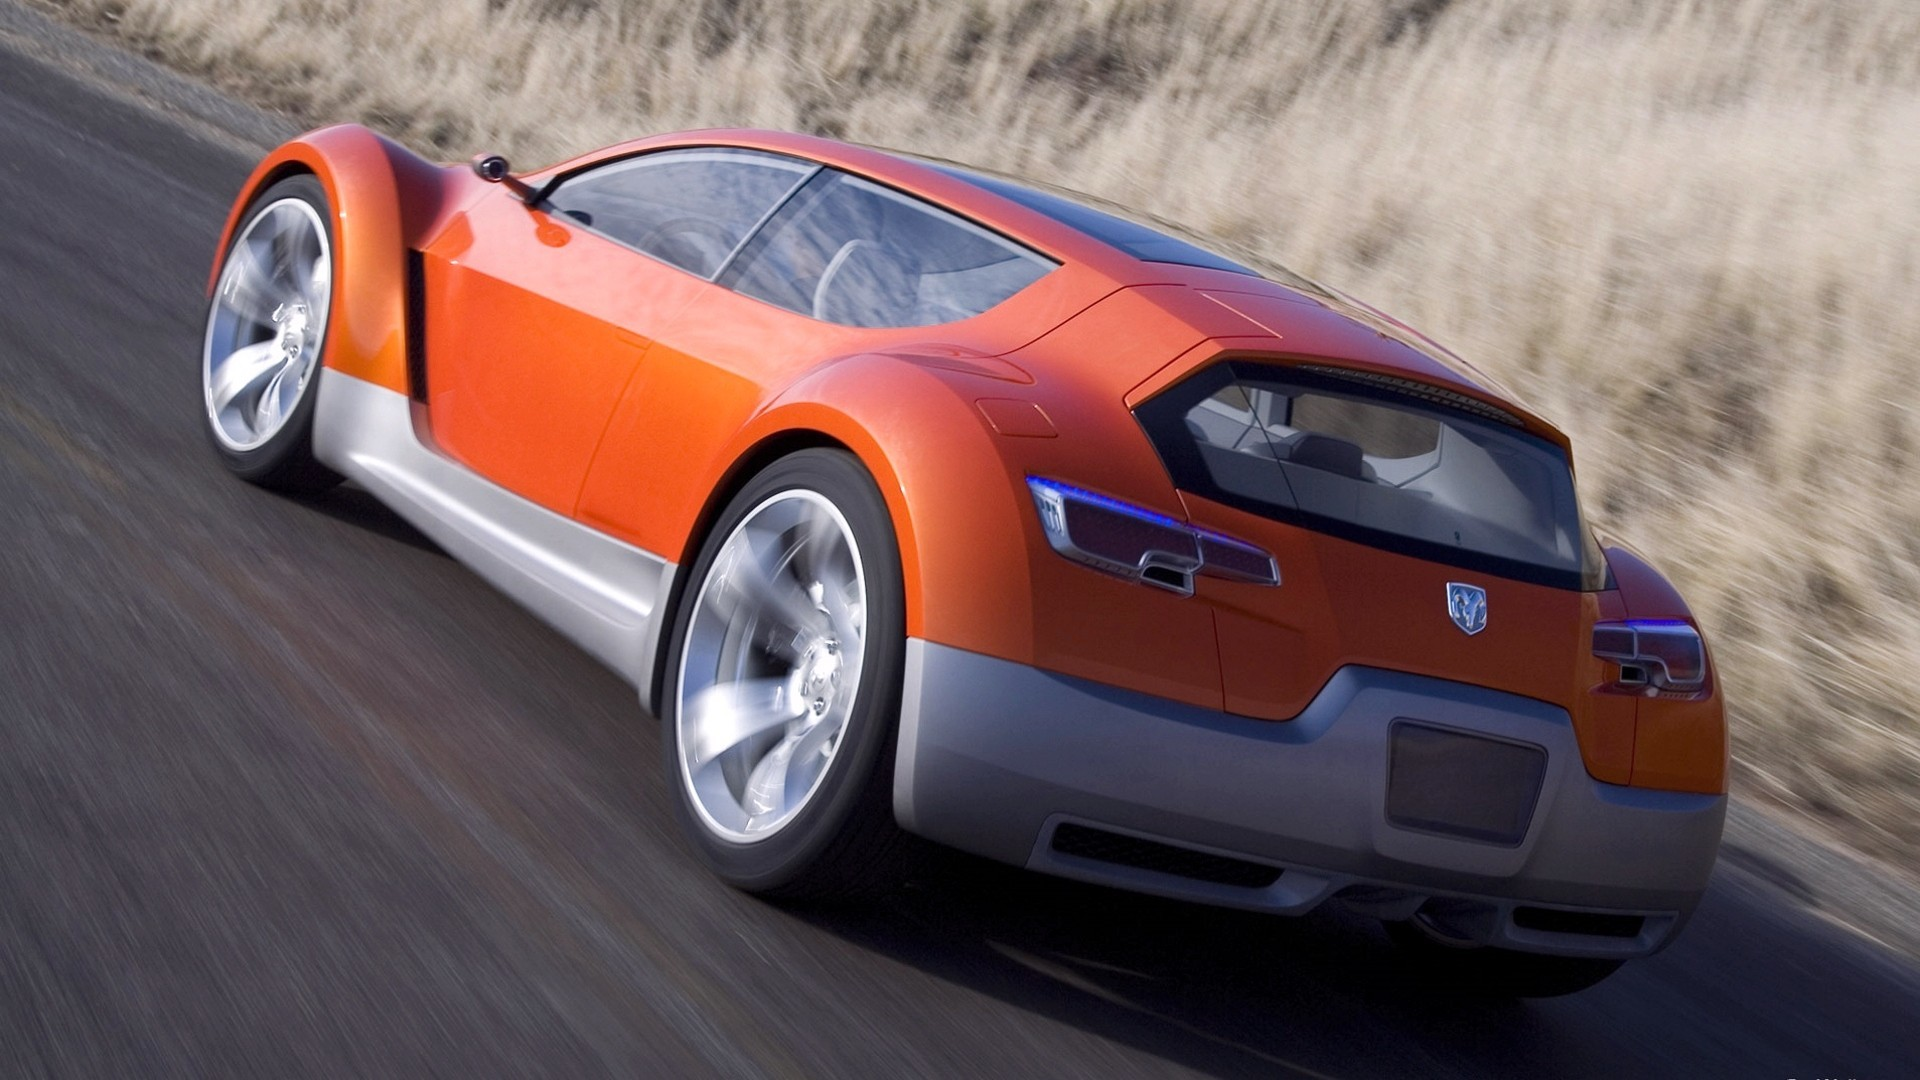 cars Dodge vehicles HD Wallpaper